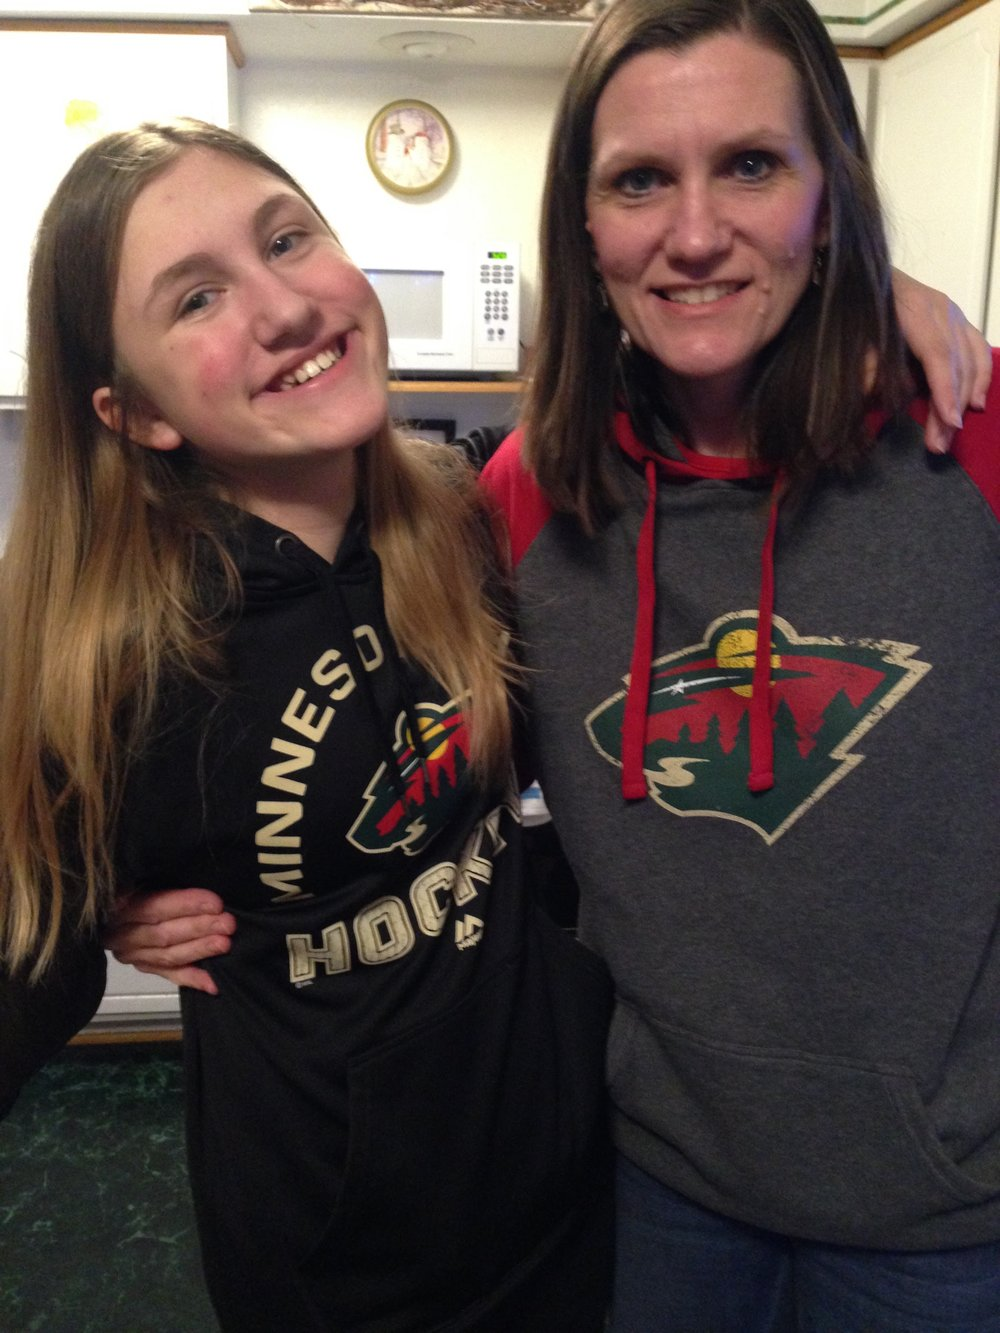 Ashlee-Mom-Hockey-Hoodies.jpg